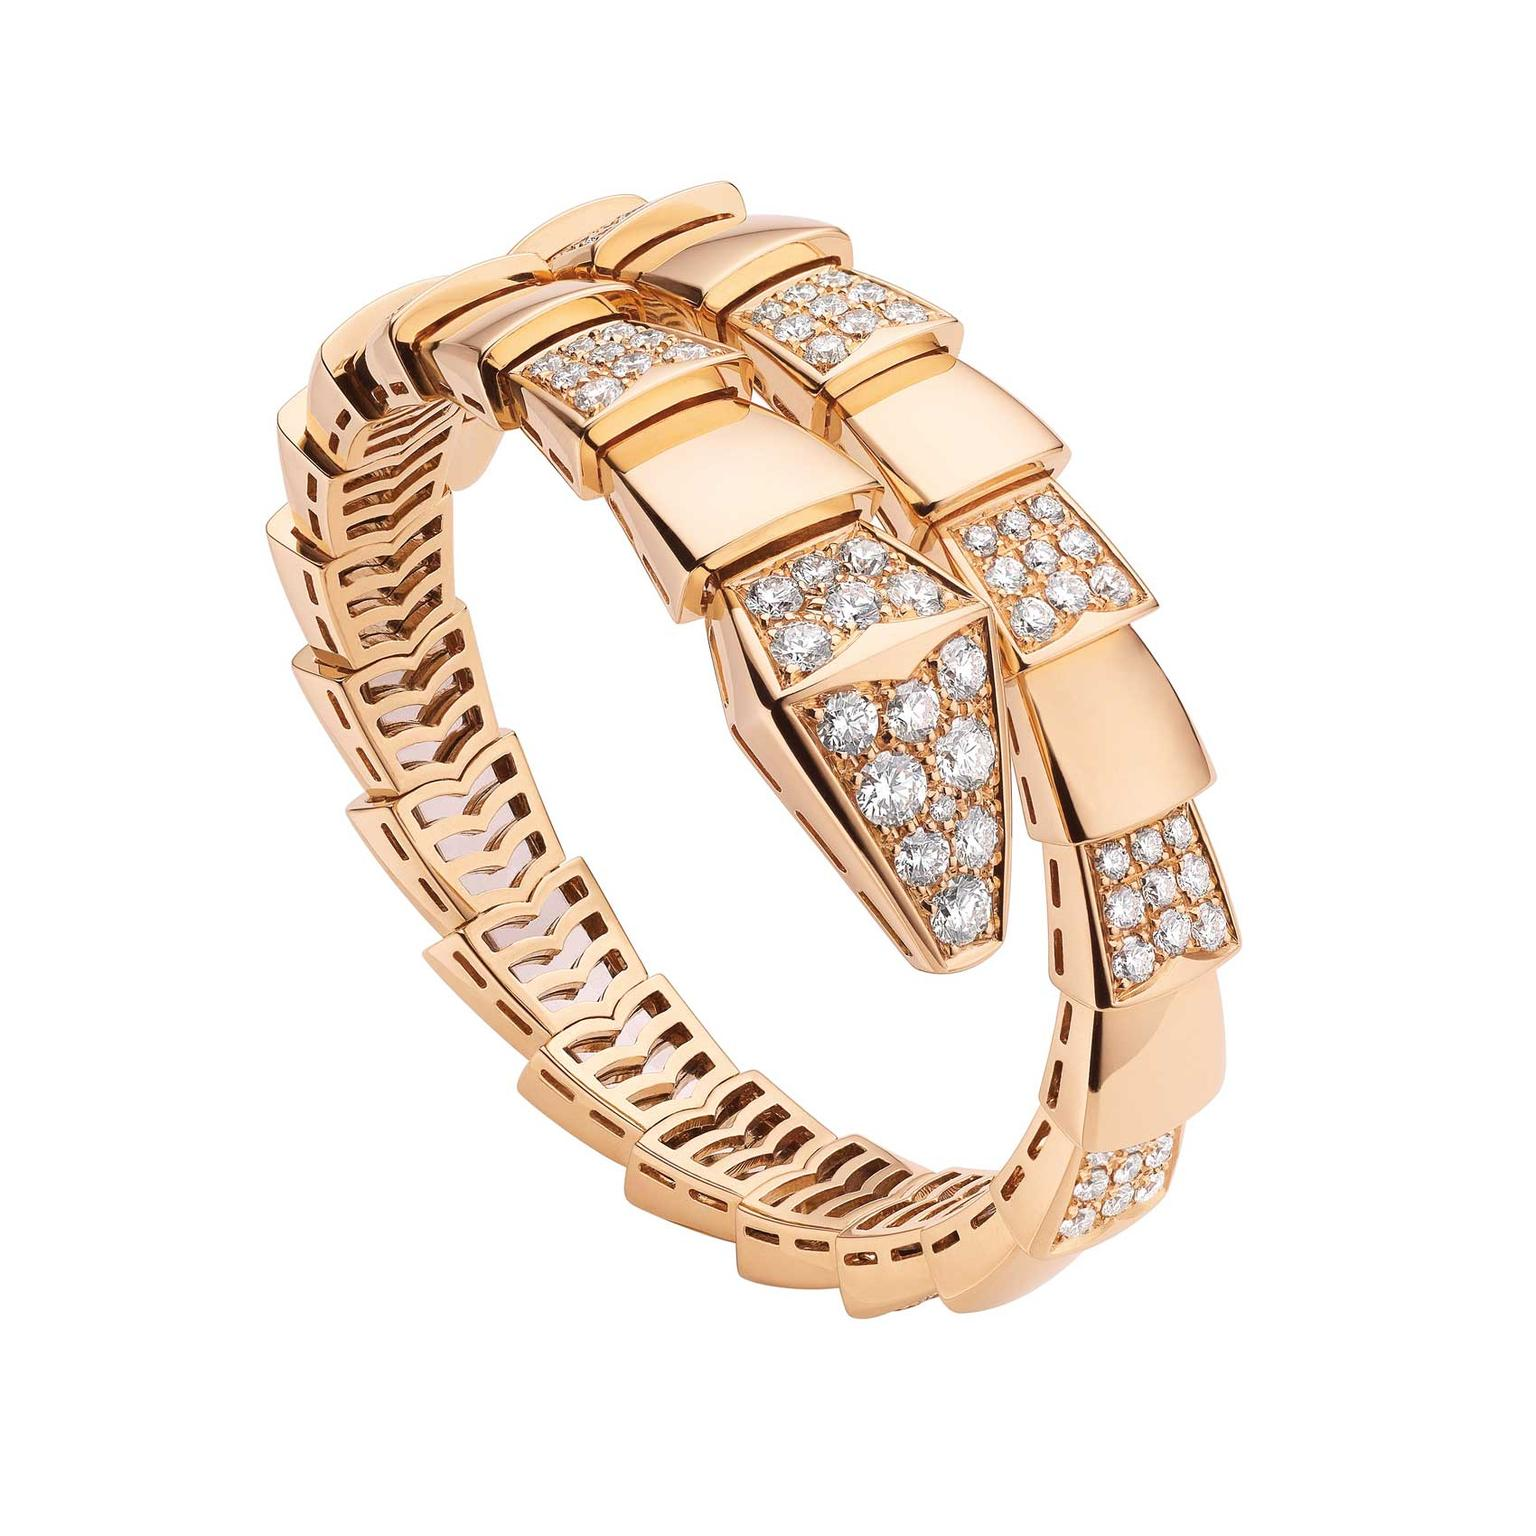 Bulgari Serpenti bracelet in rose gold with diamonds